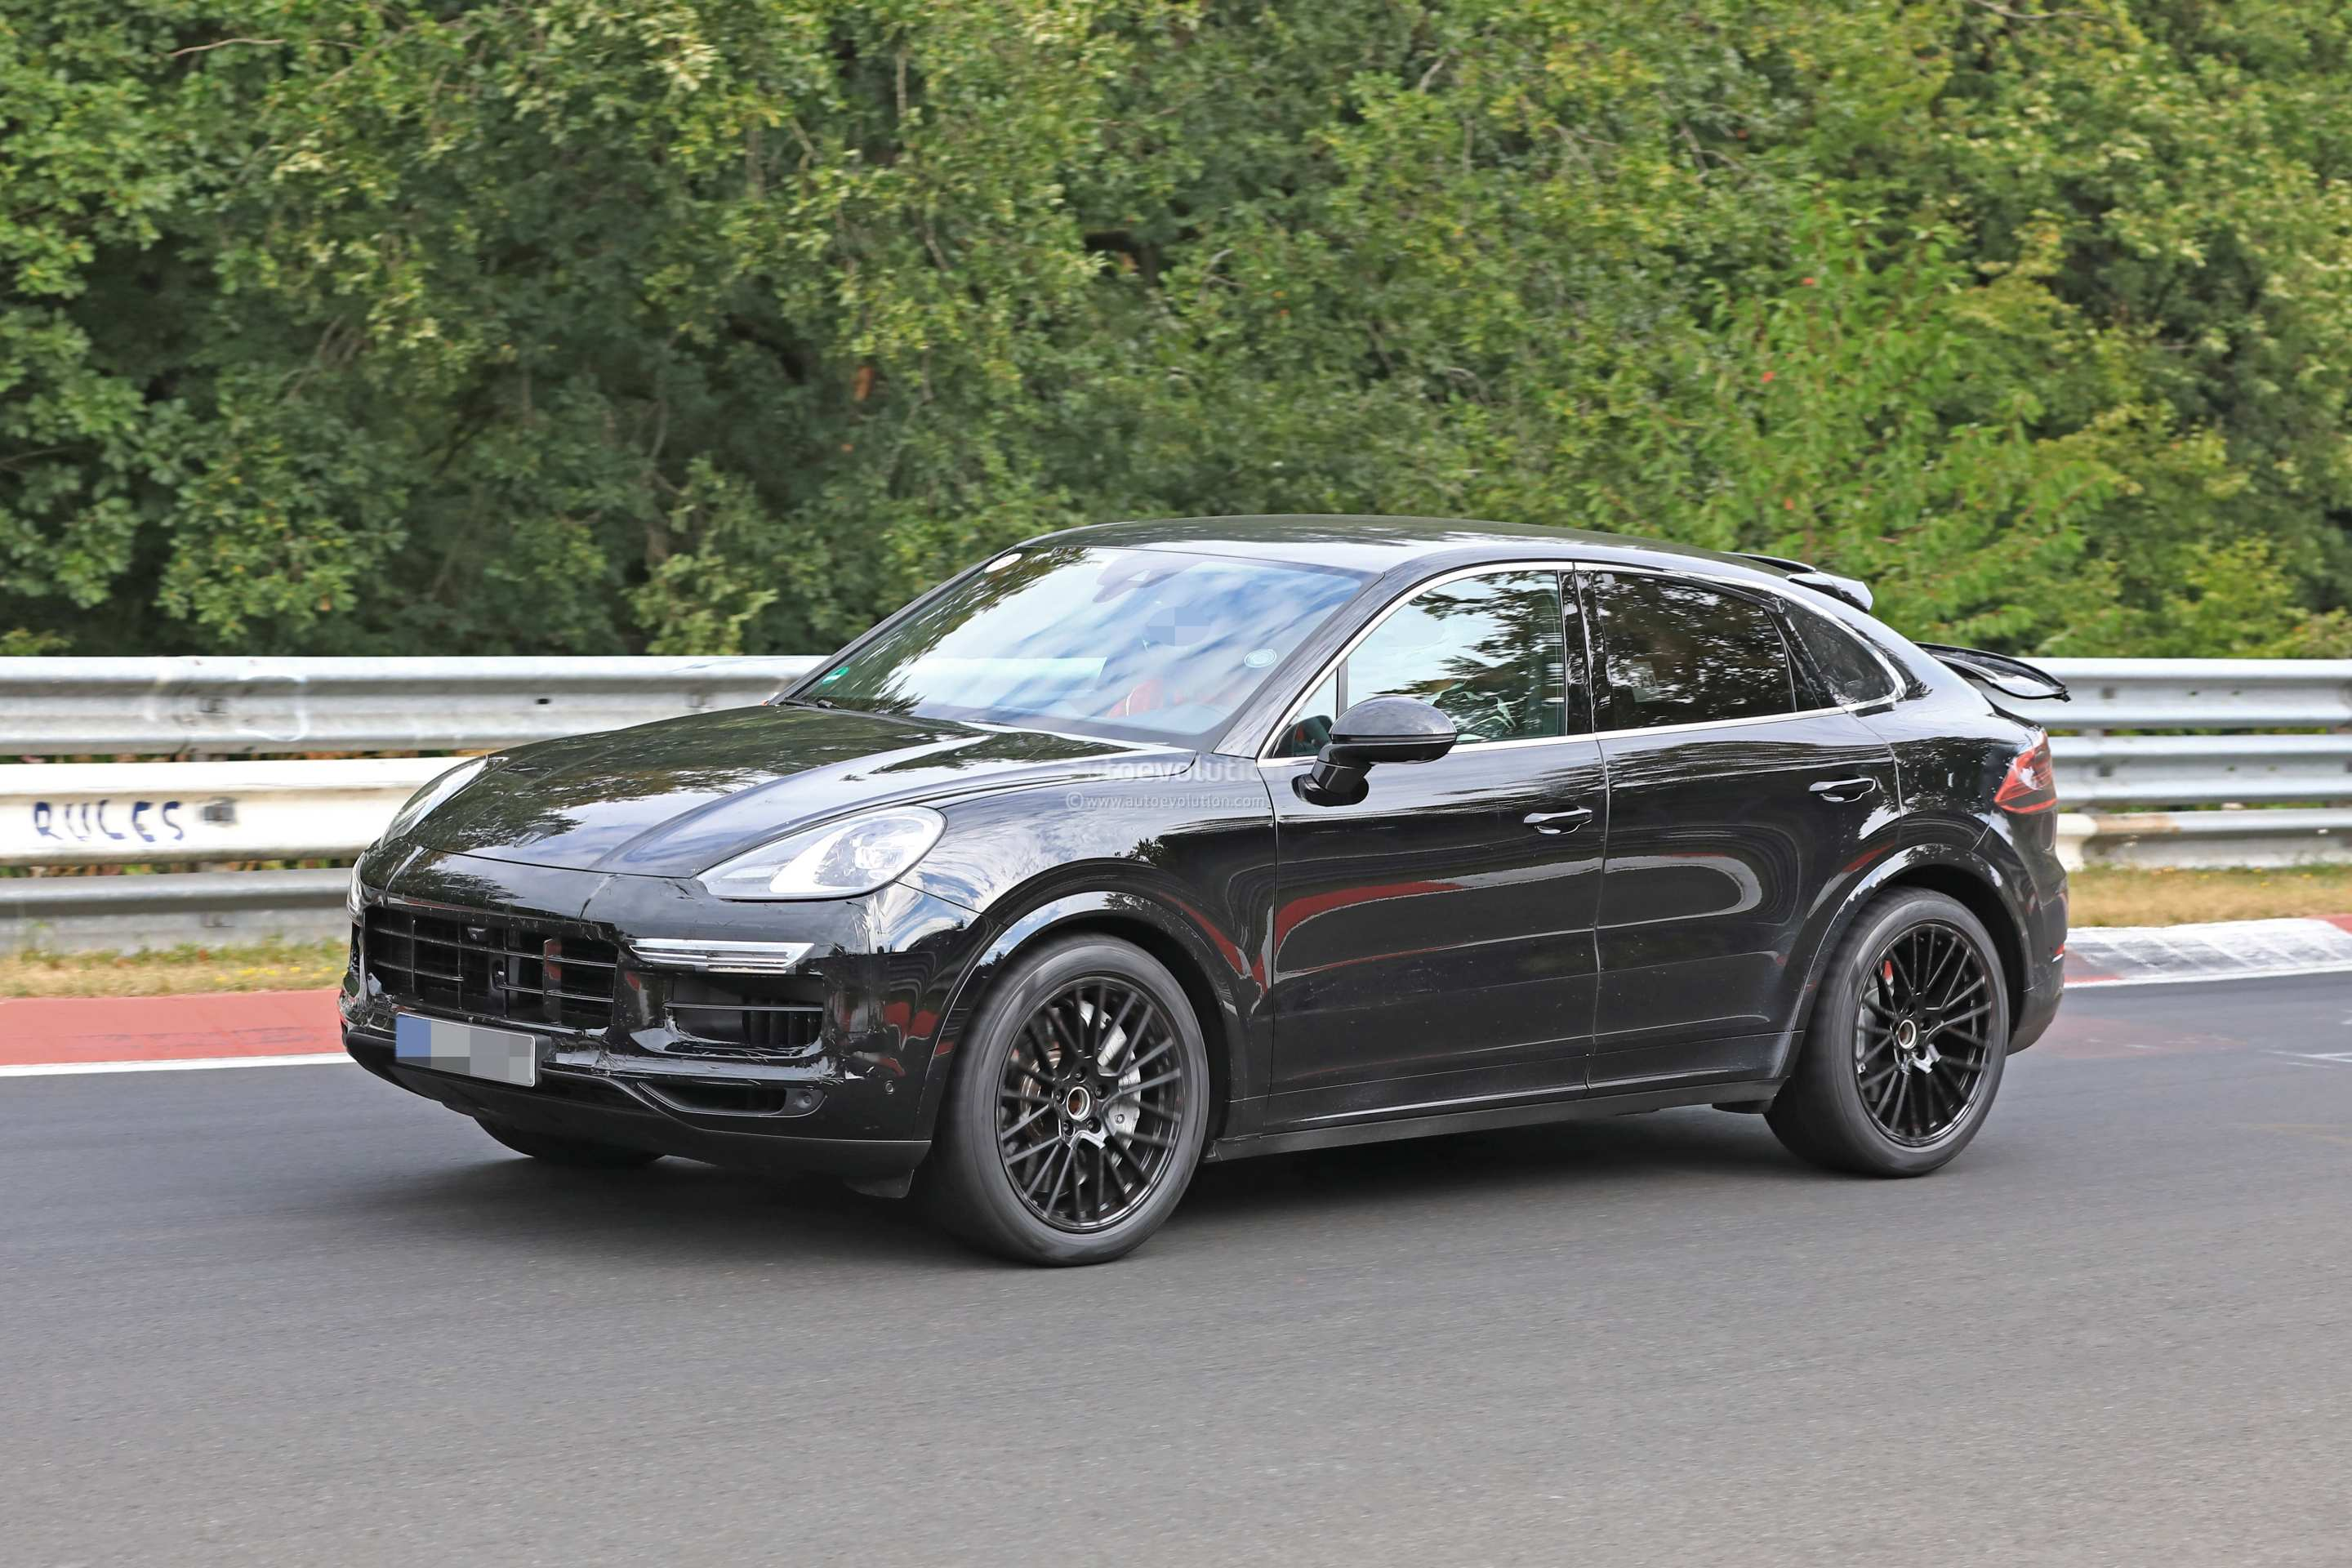 98 The 2020 Porsche Cayenne Turbo S Reviews